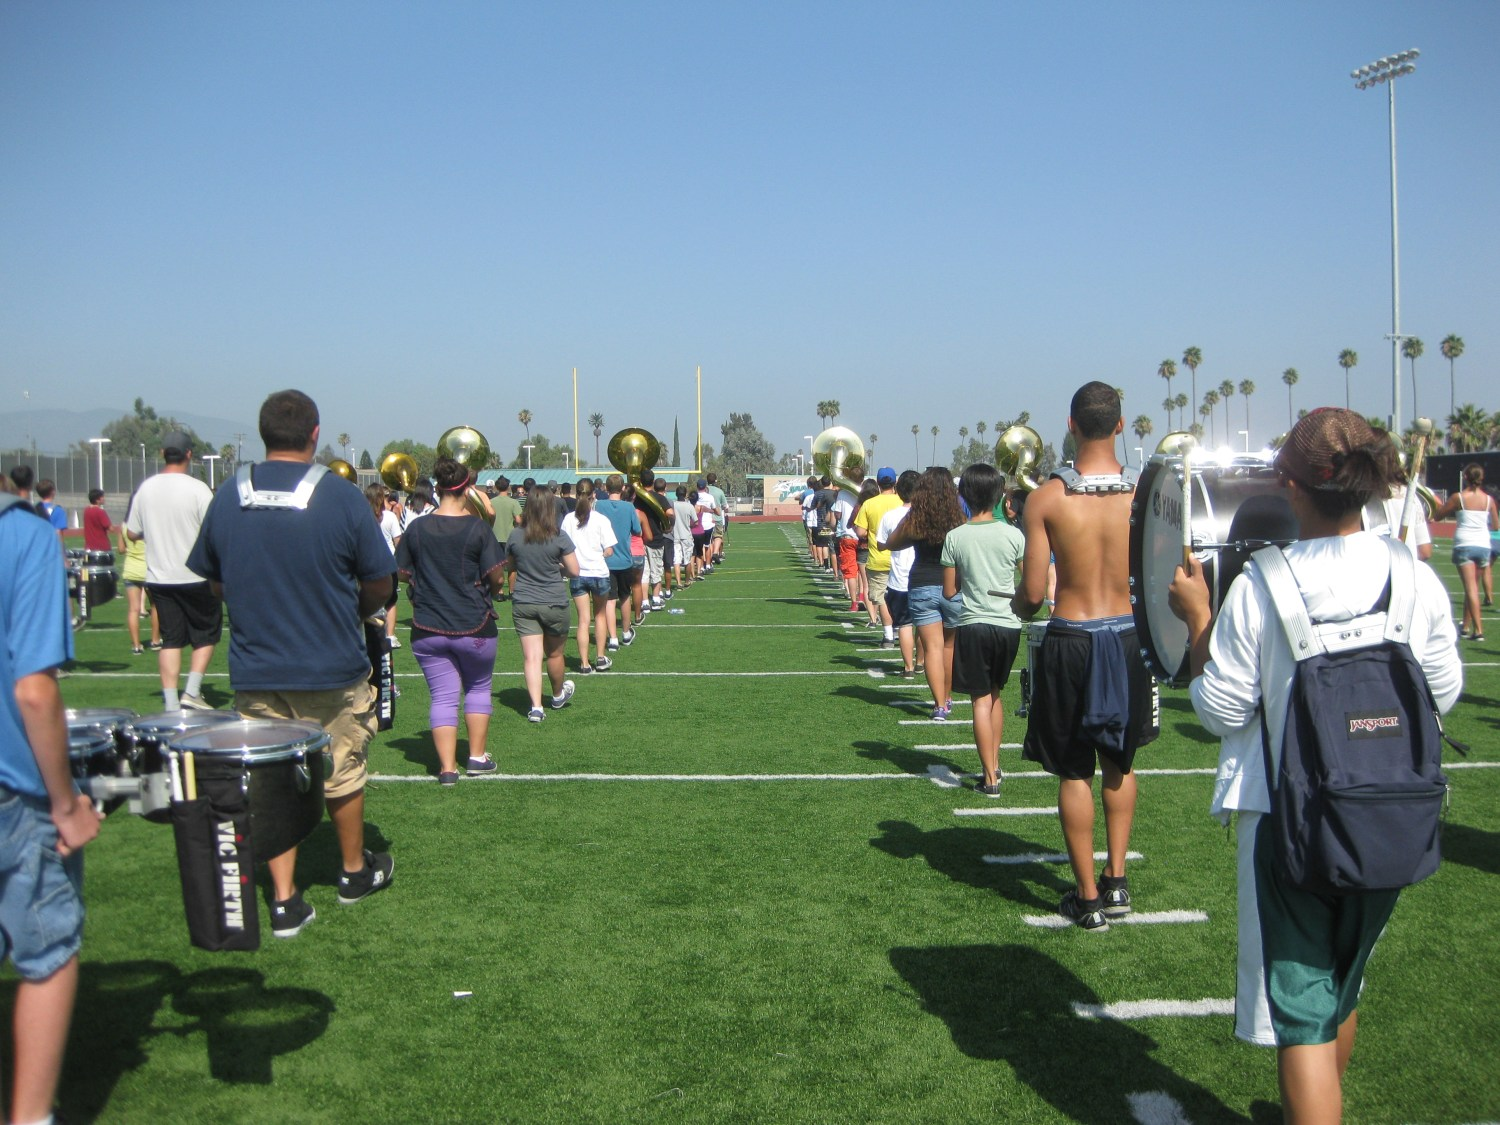 Band Camp - learning field show